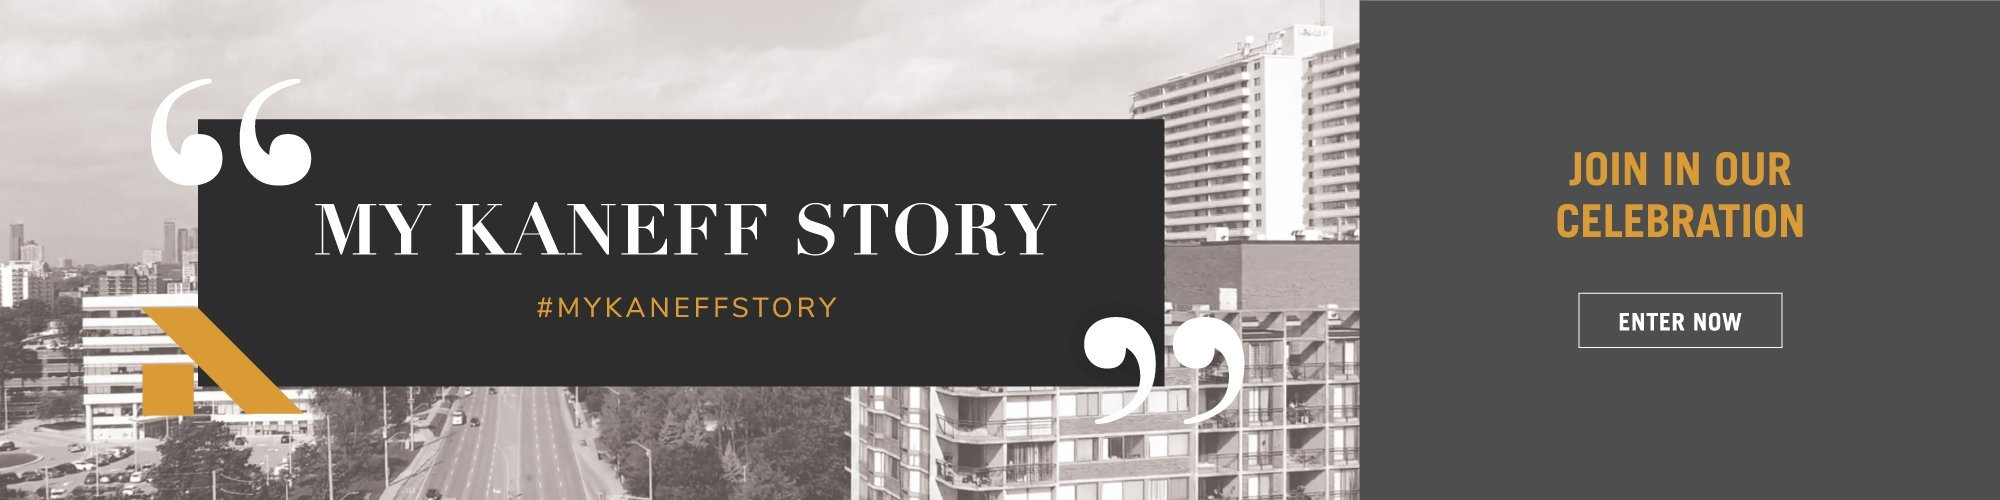 My Kaneff Story -Join in our Celebration. Enter now.